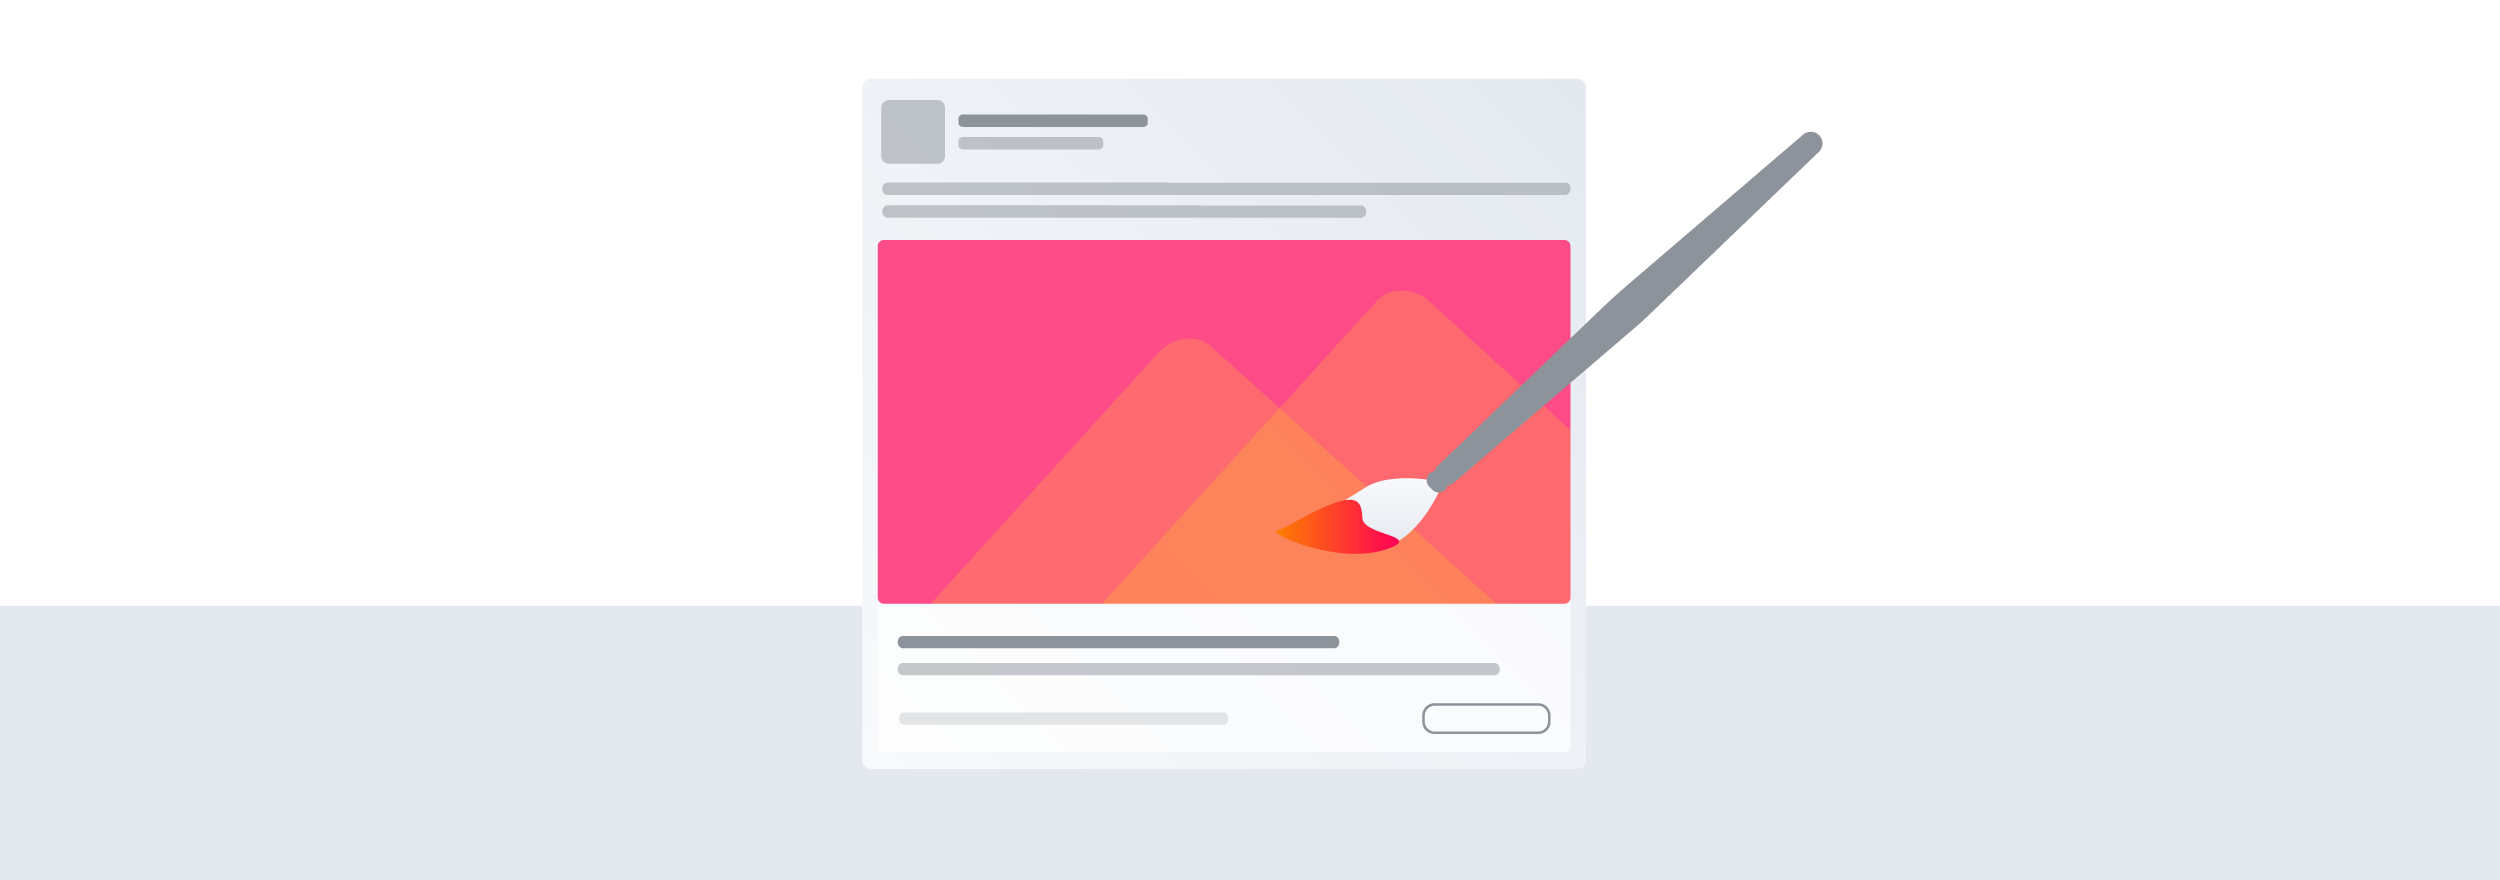 22 Creative Facebook Ad Design Tactics to A/B Test